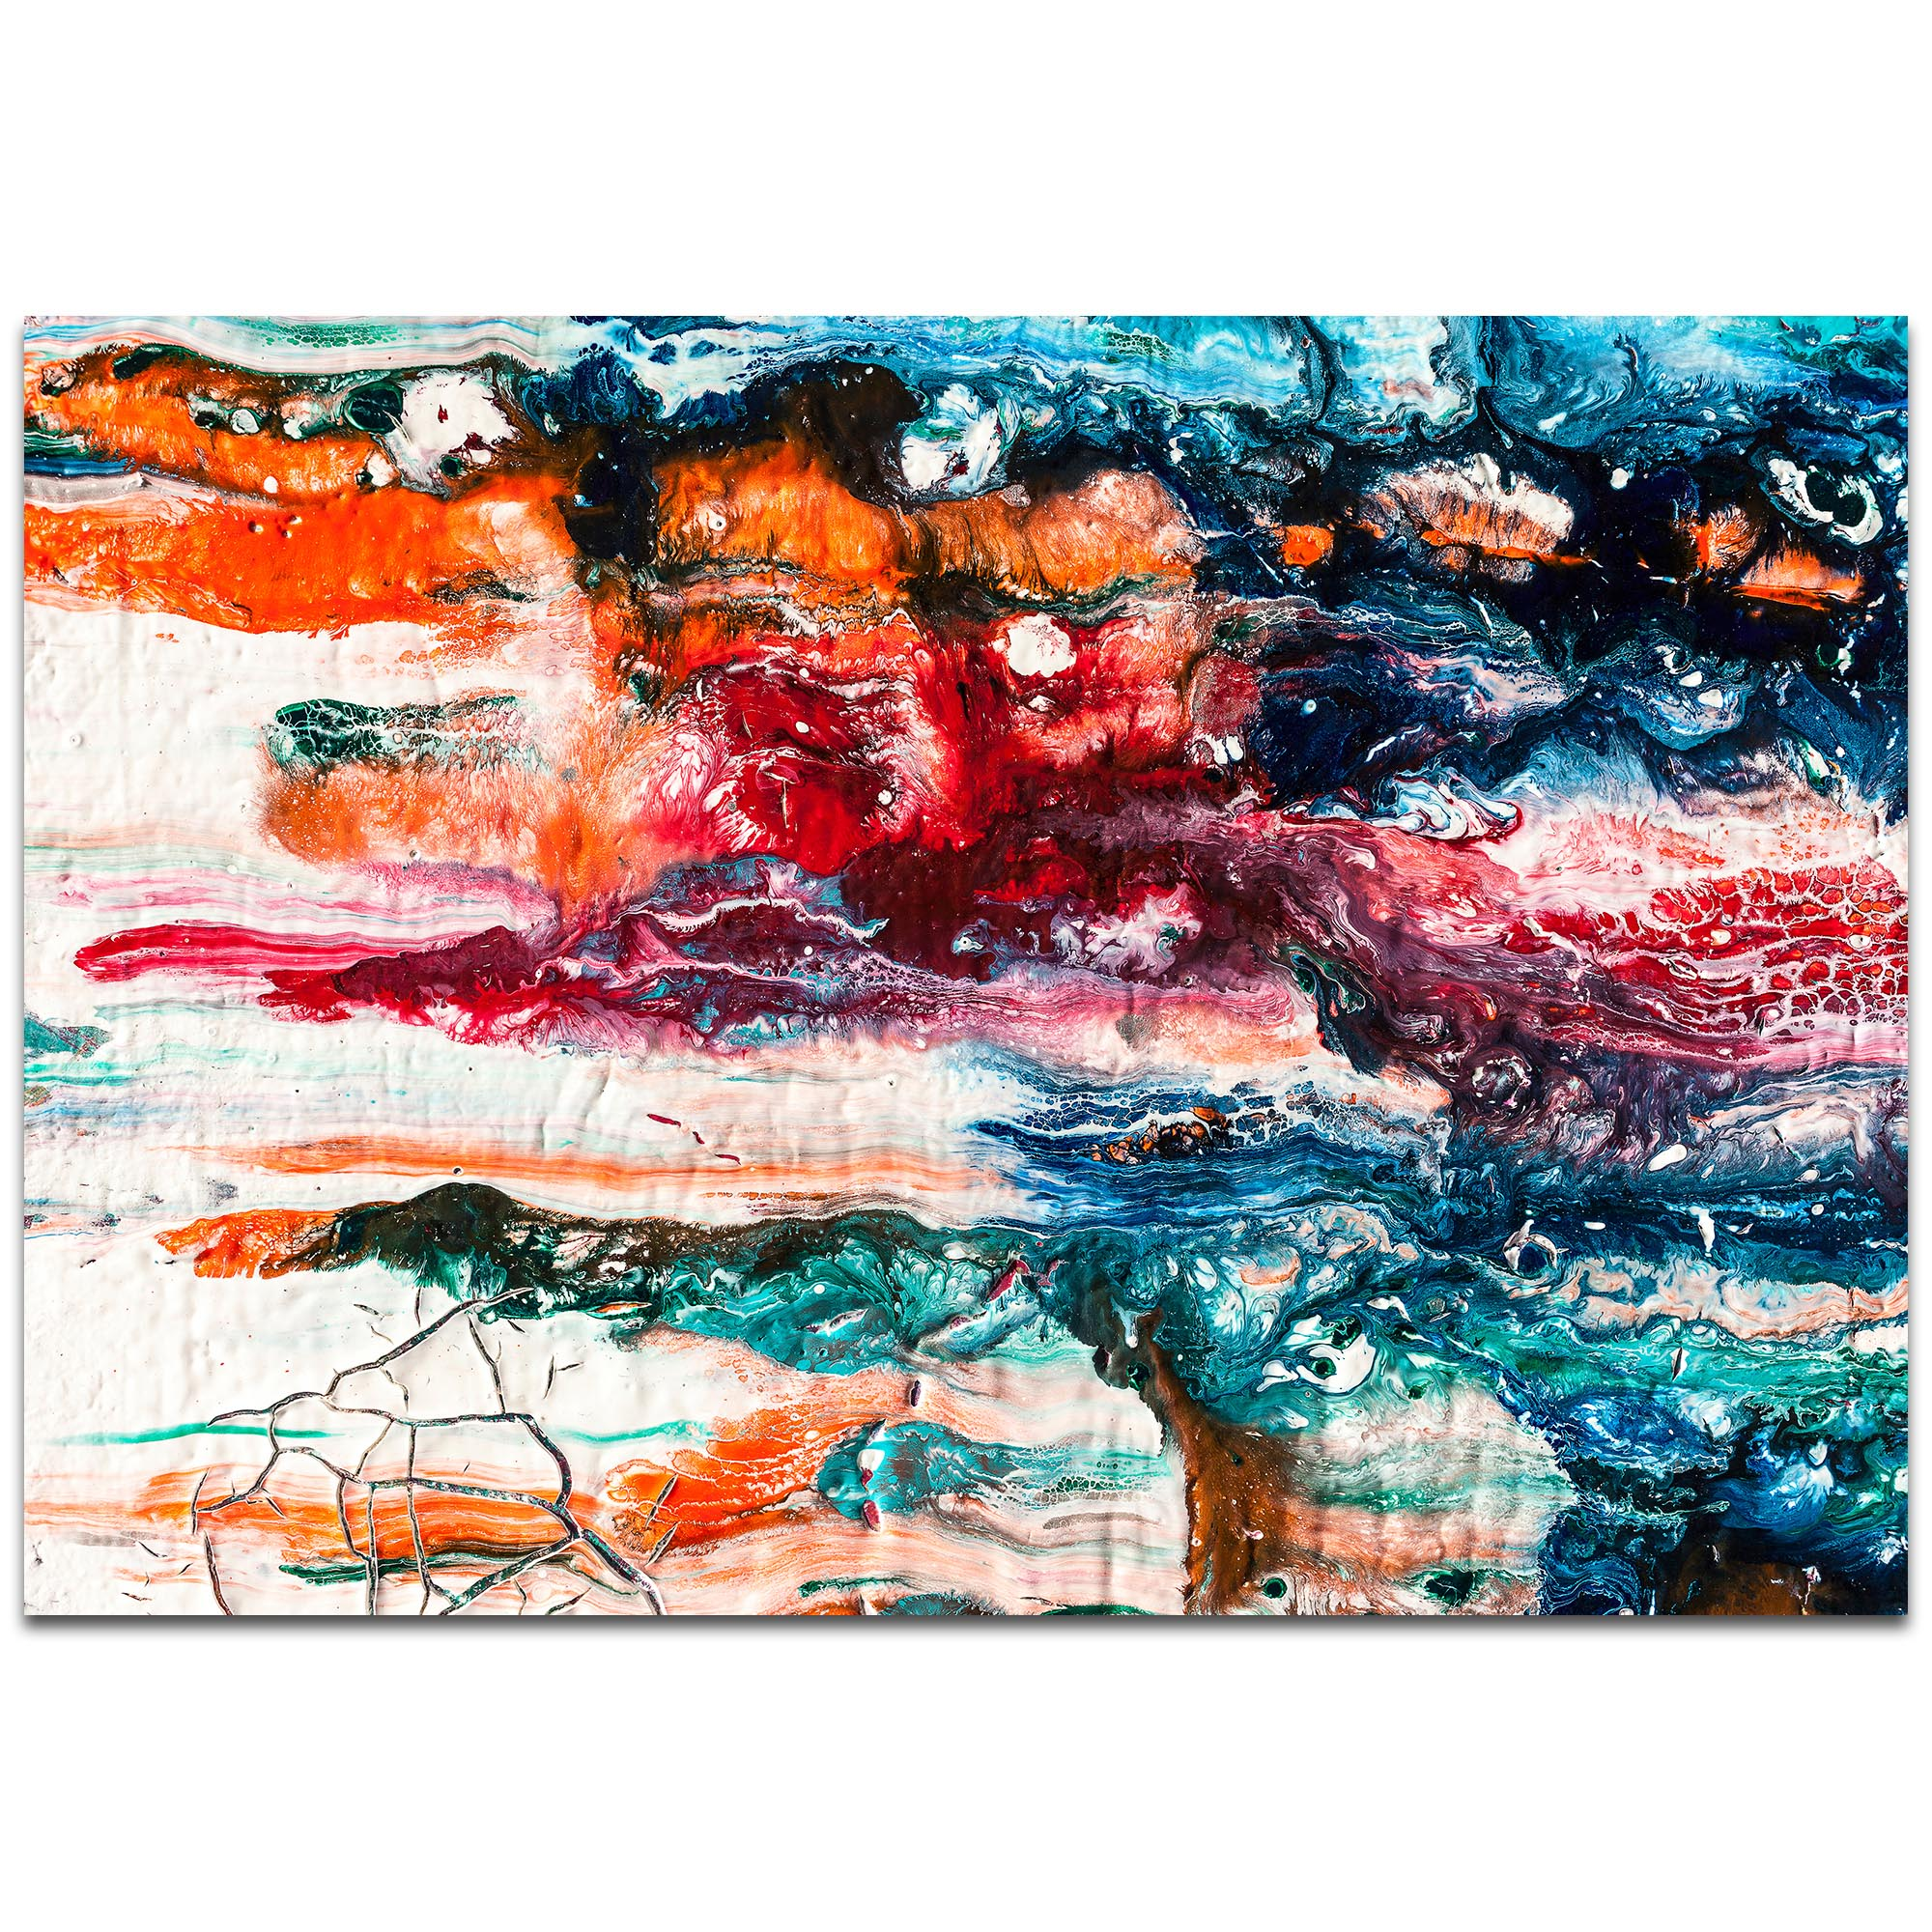 Abstract Wall Art 'Sunset On Her Breath 3' - Colorful Urban Decor on Metal or Plexiglass